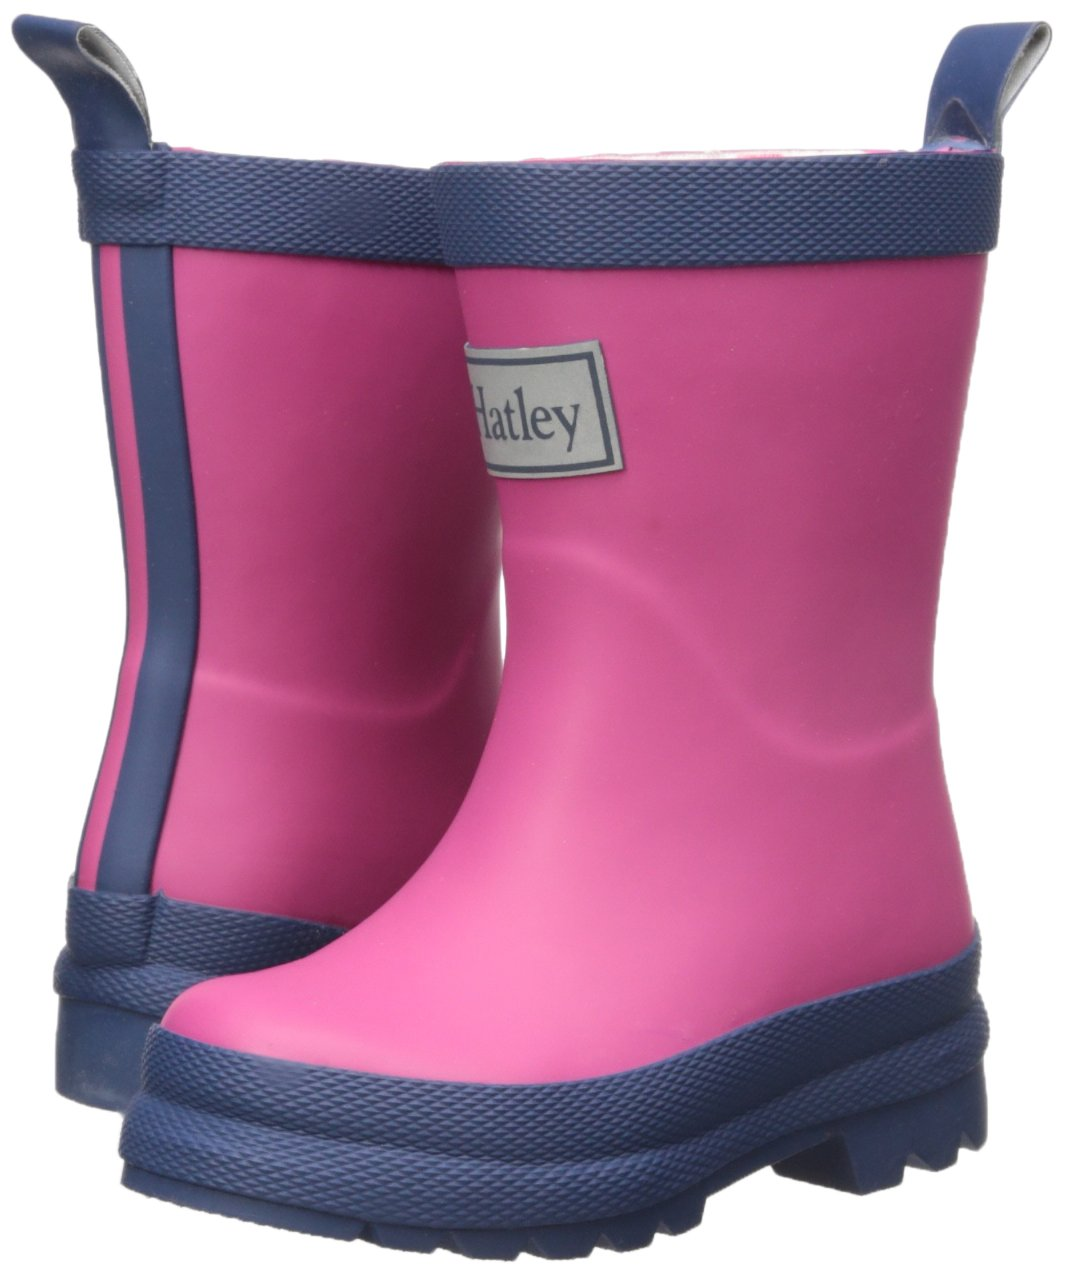 Hatley Kids' Classic Boots Girls Rain Accessory, Fuchsia Navy, 7 M US Toddler by Hatley (Image #6)